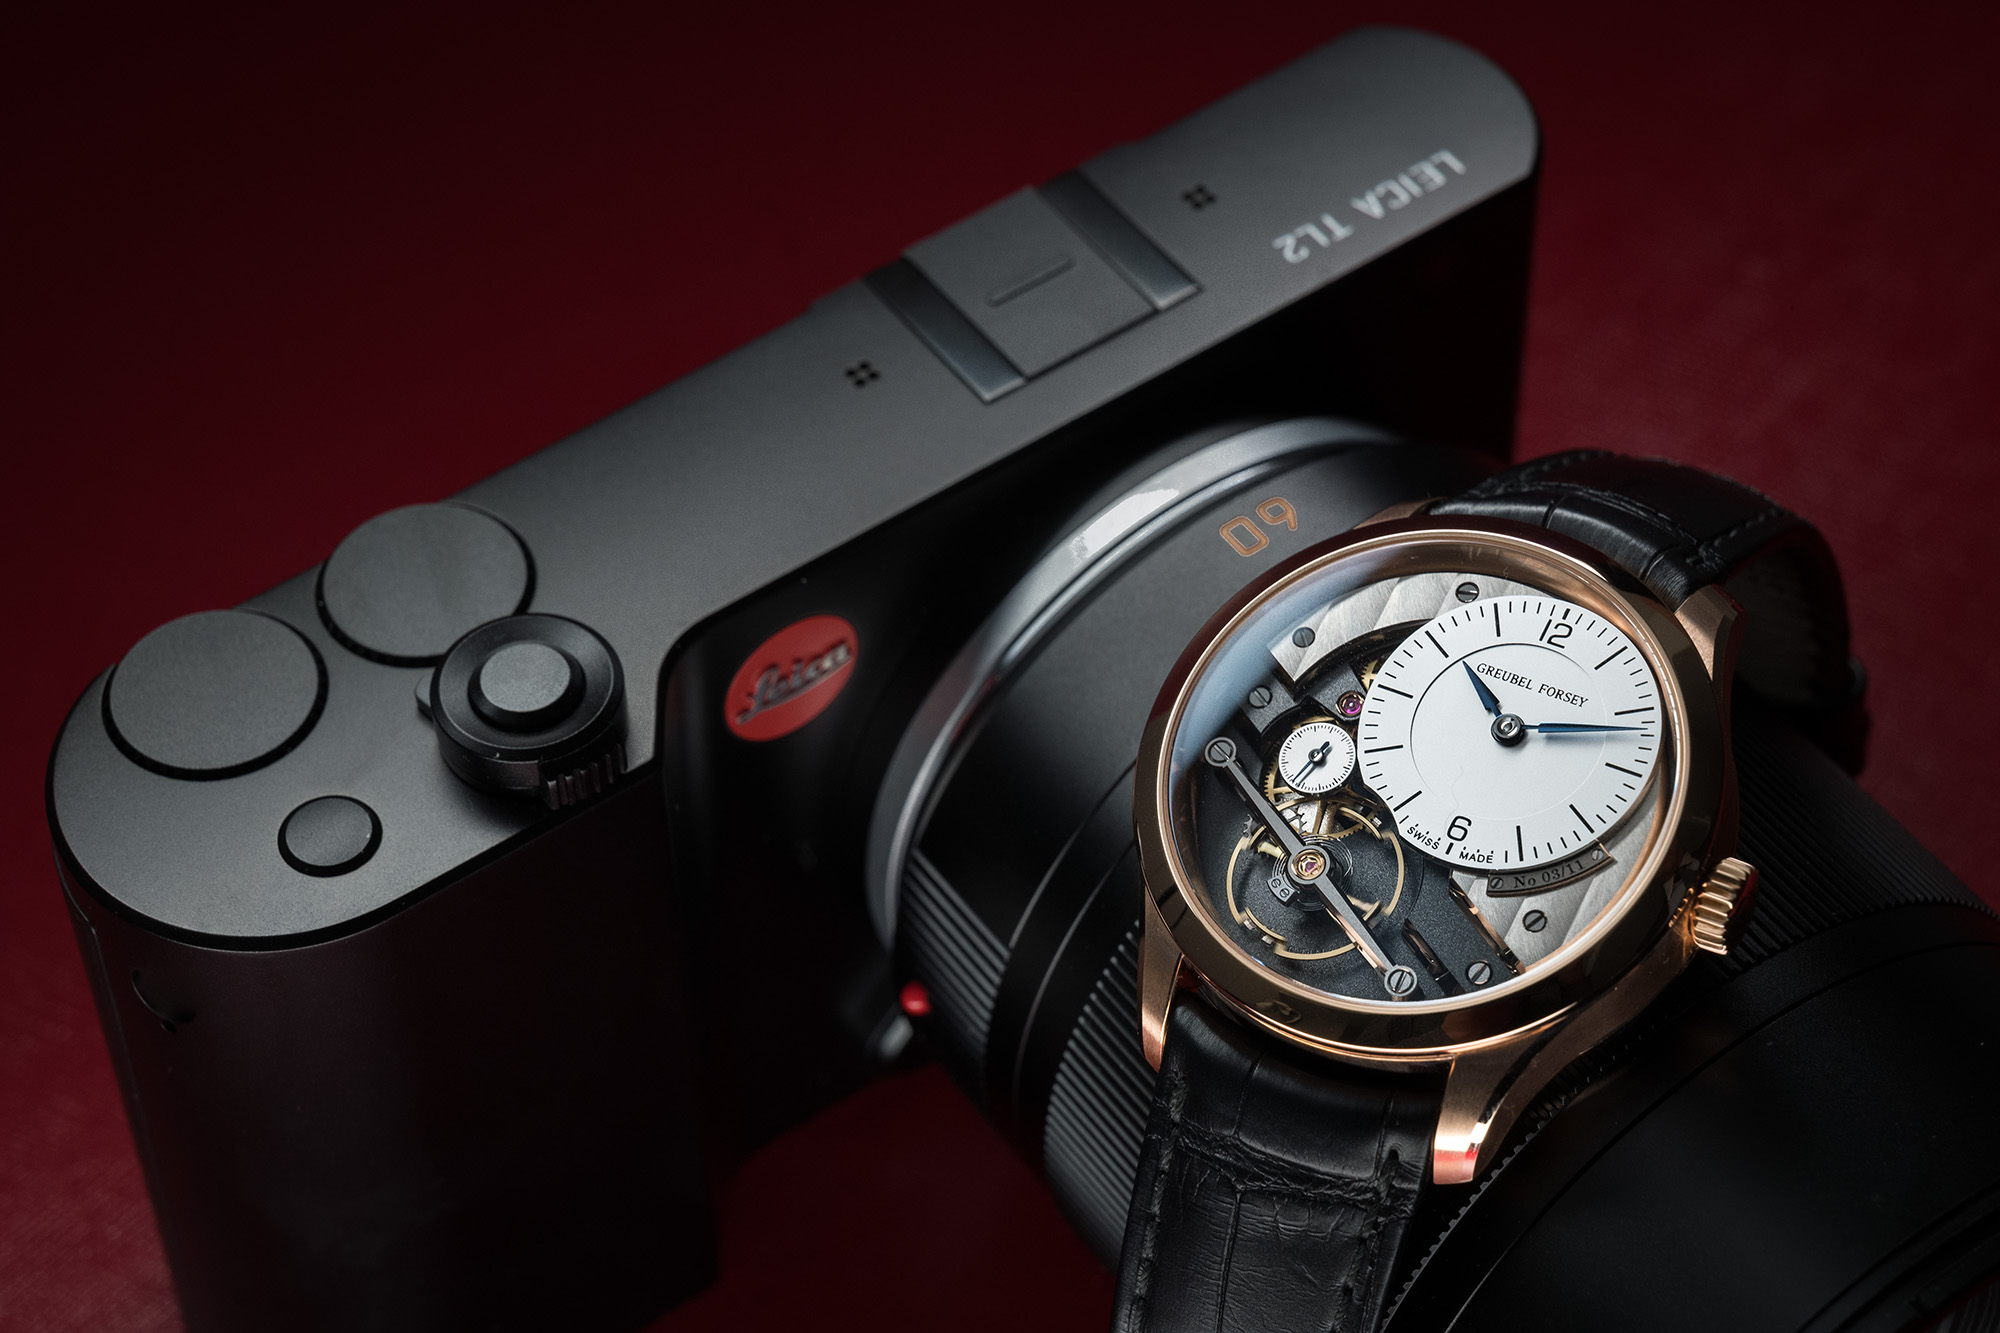 Leica TL2 in black with the Greubel Forsey Signature 1 timepiece. Shot on the Leica SL with 24-90mm SL zoom lens.